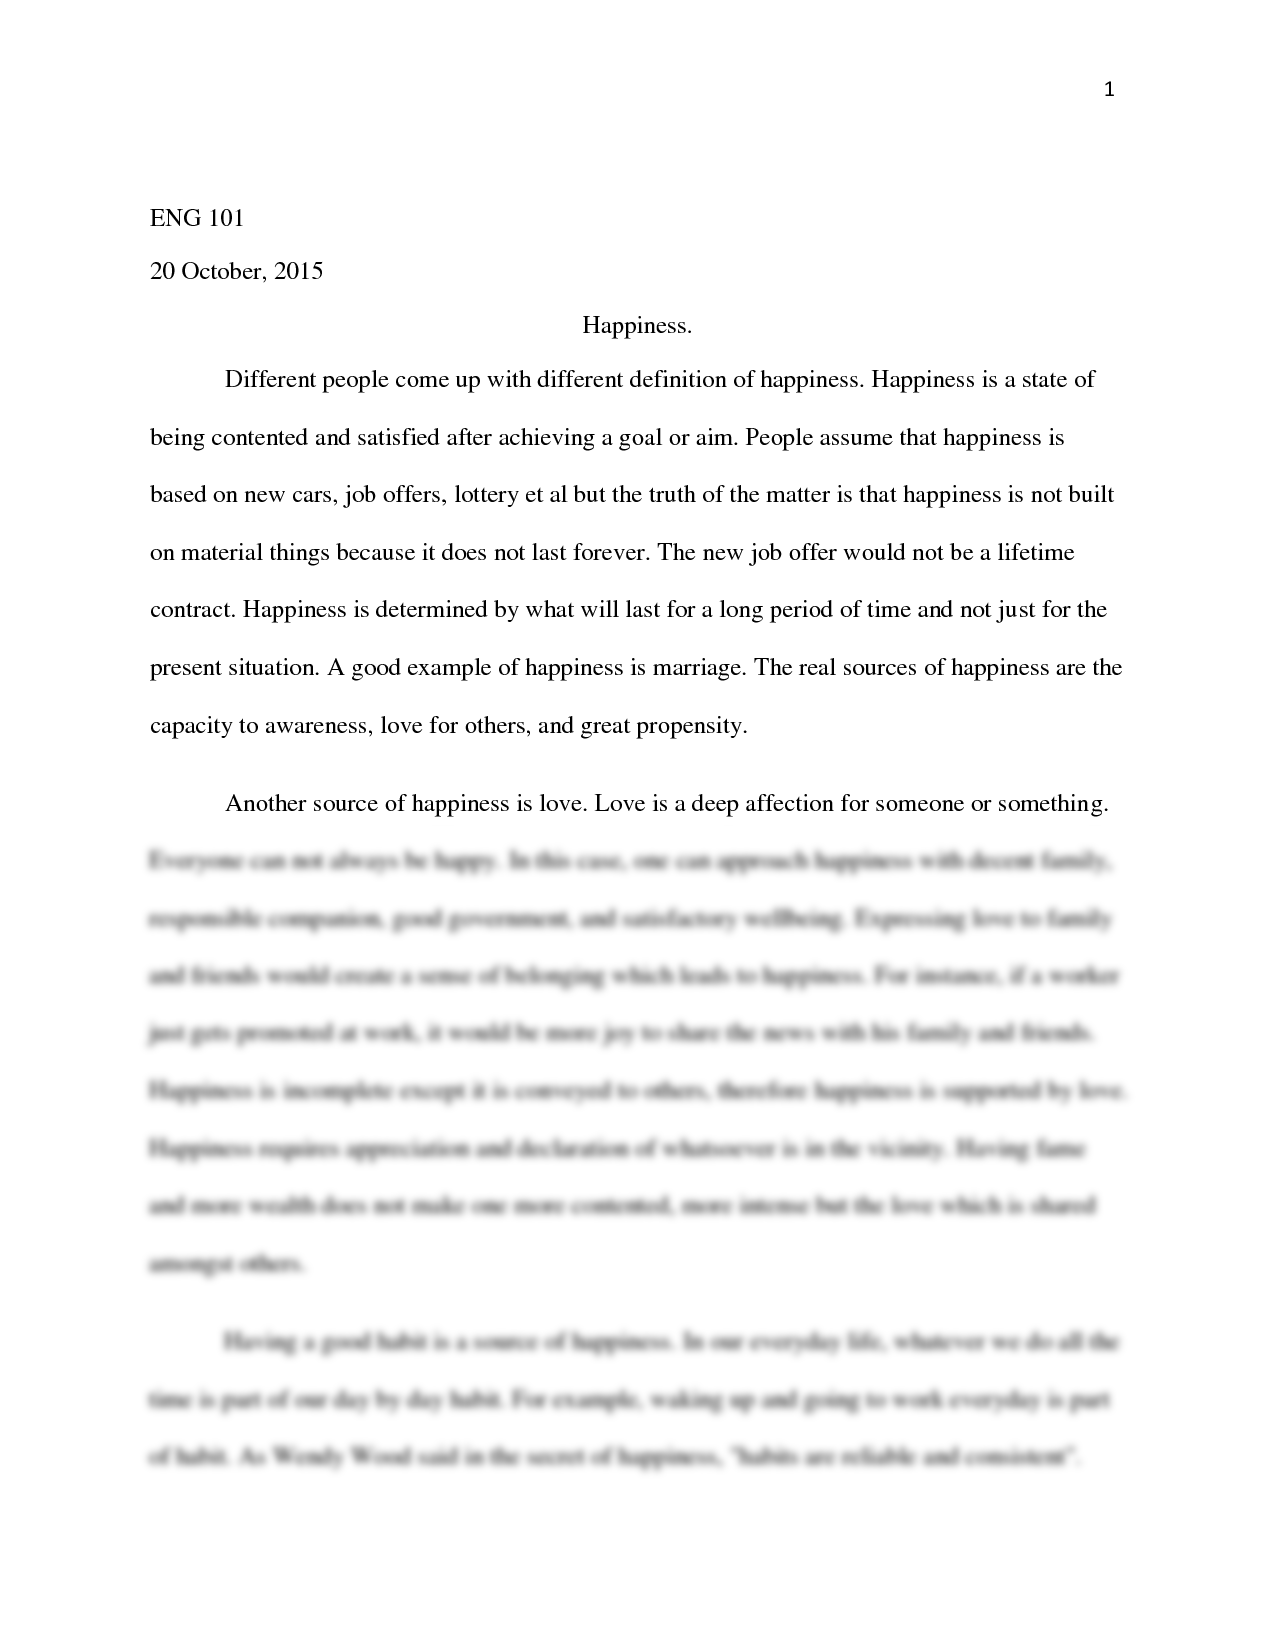 teacher meaning essay with happiness